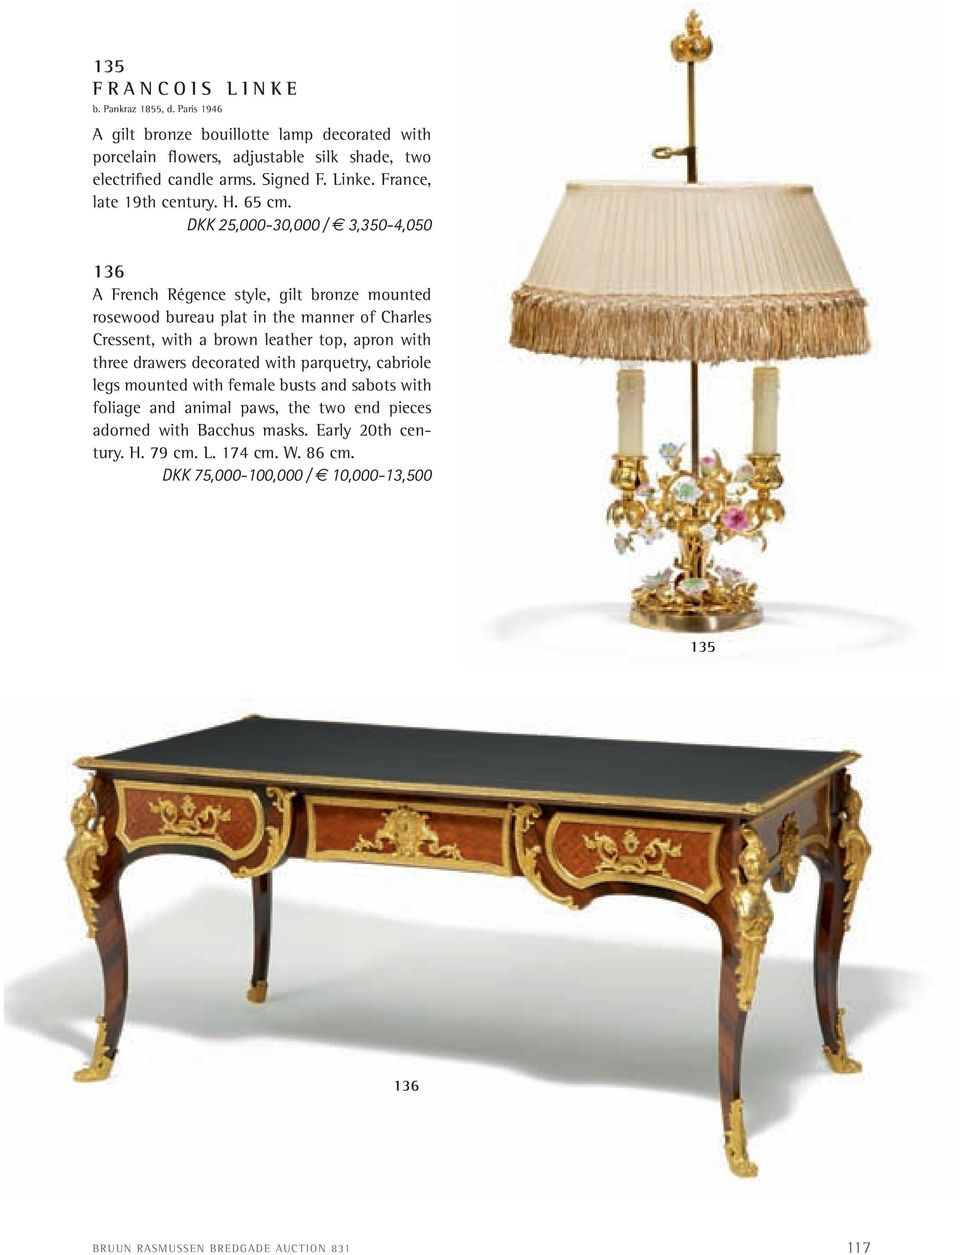 DKK 25,000-30,000 / 3,350-4,050 136 a french régence style, gilt bronze mounted rosewood bureau plat in the manner of charles cressent, with a brown leather top, apron with